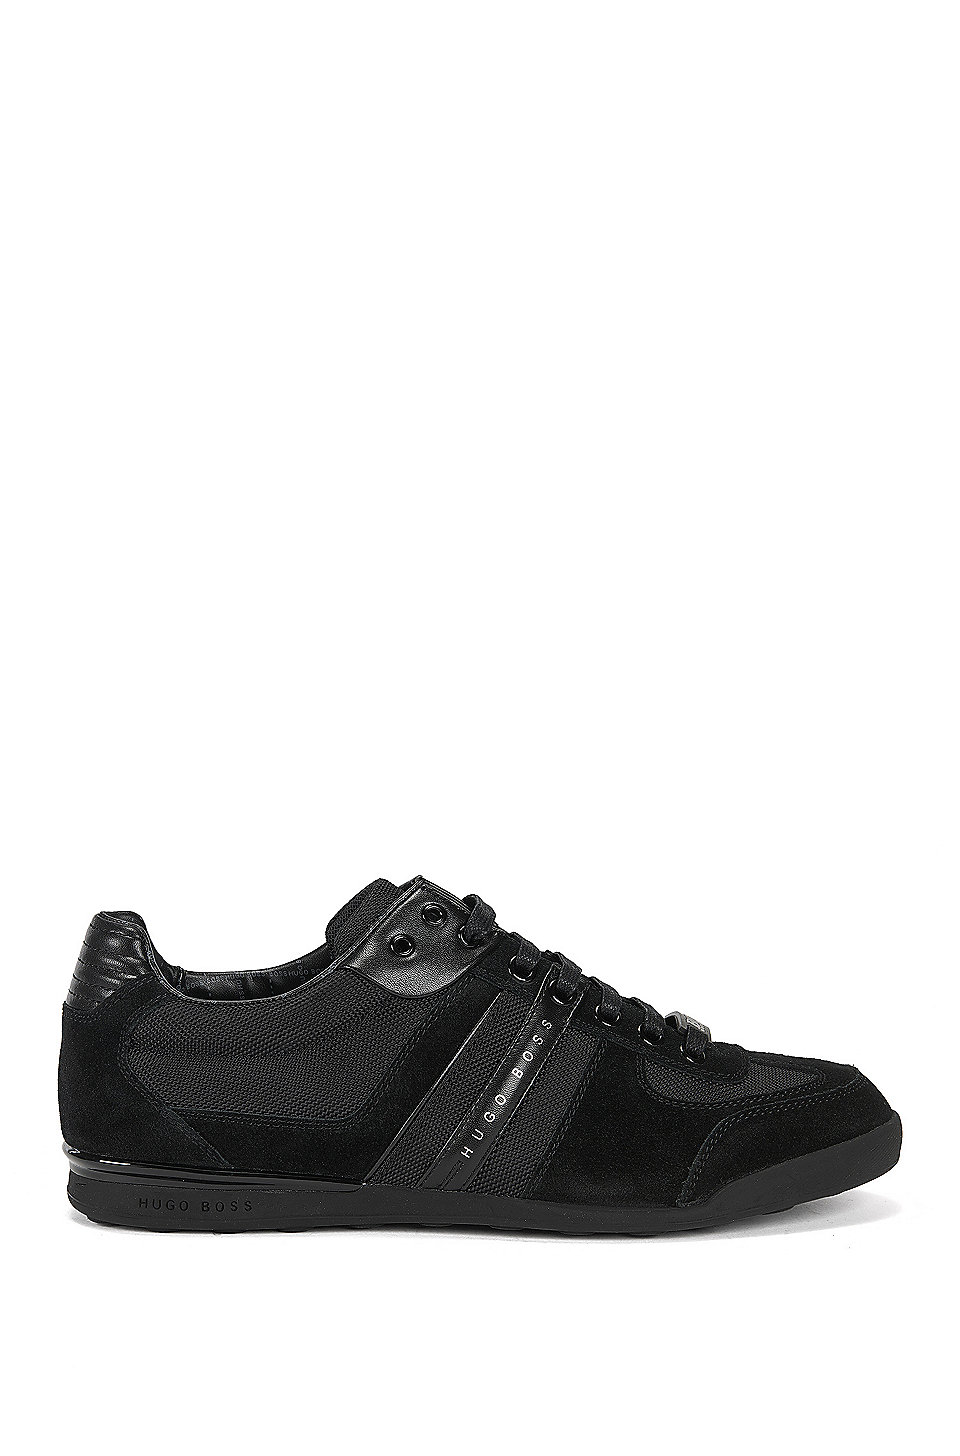 Low profile sneakers with technical construction, Black